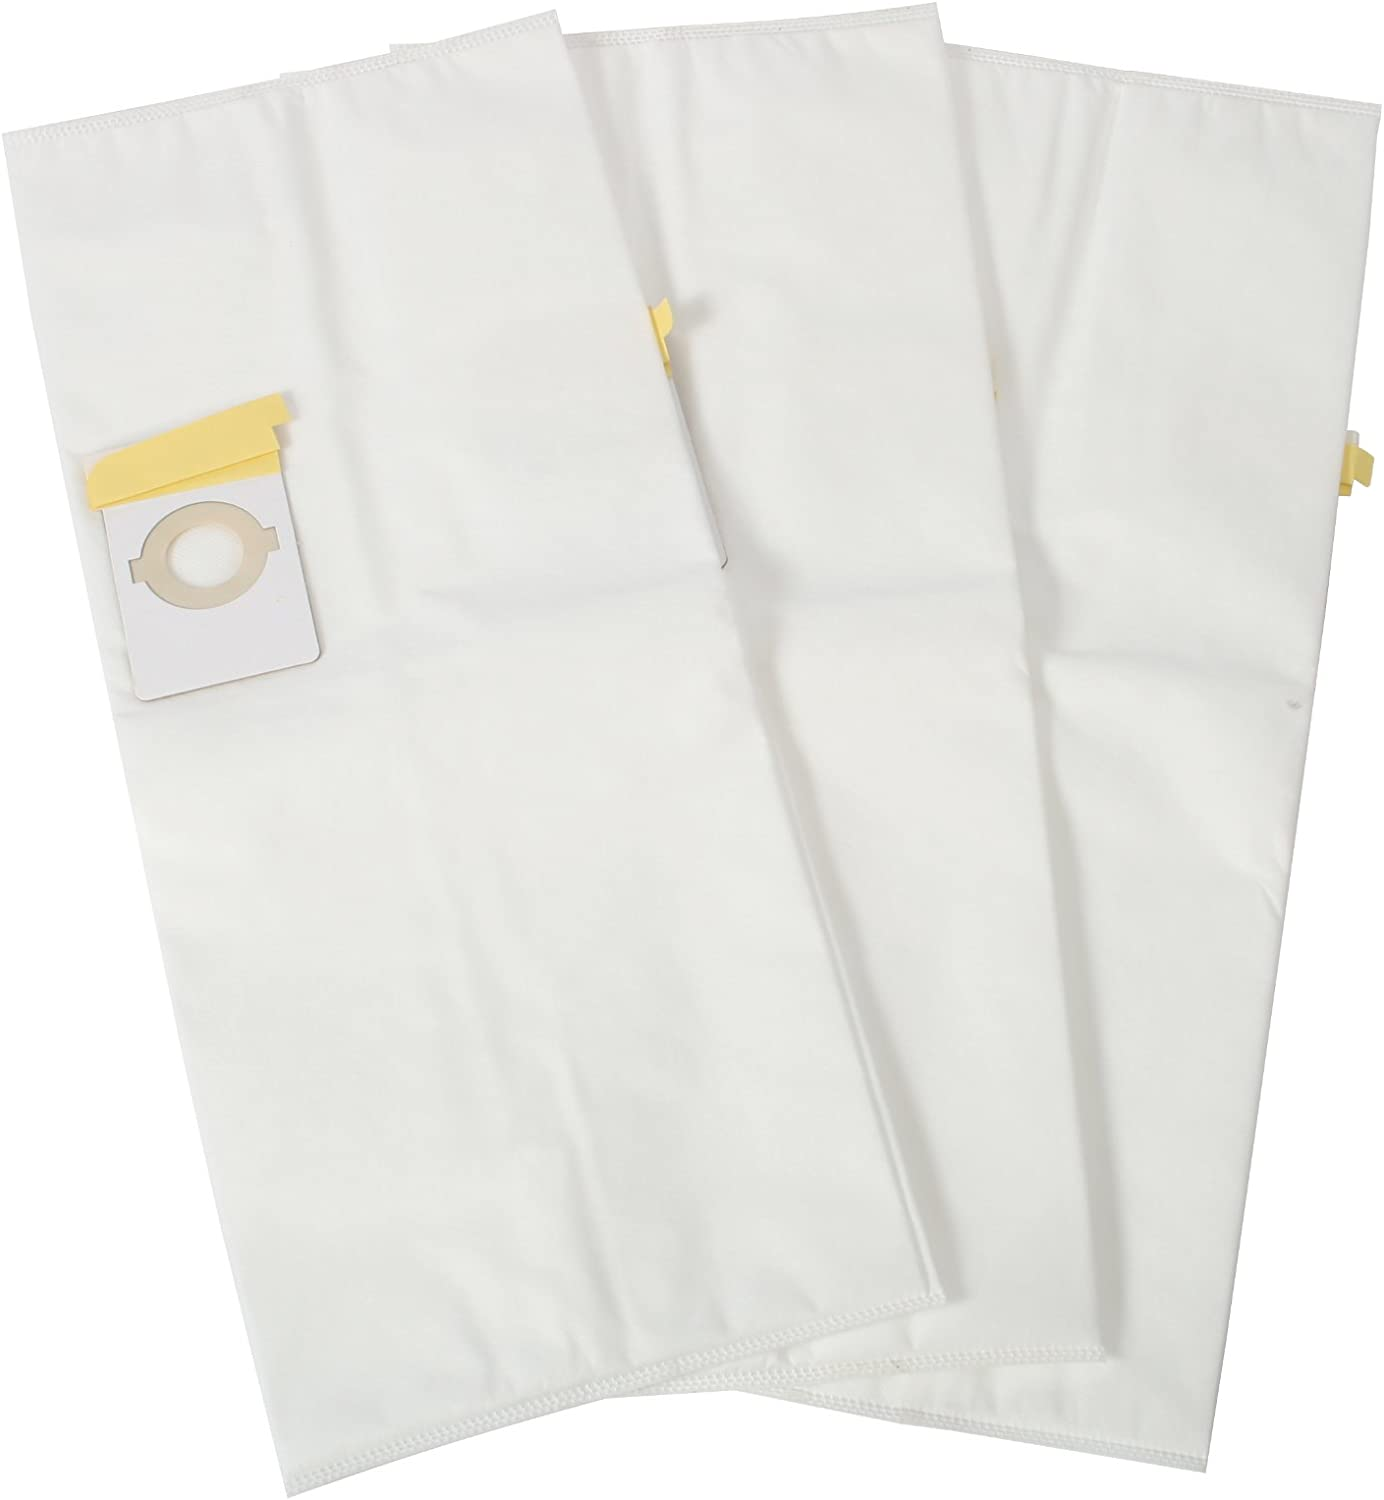 Cen-Tec Systems 36747 3-Pack Beam Central Vacuum Bags